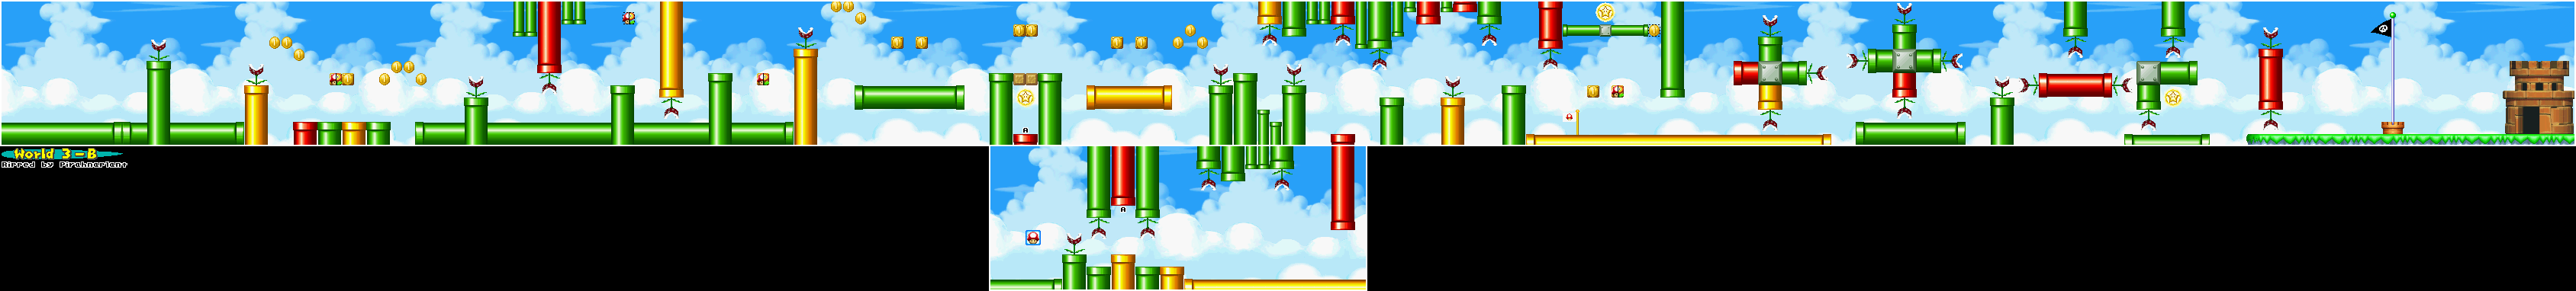 New super mario bros game maps ds 3 c world 4 gumiabroncs Images